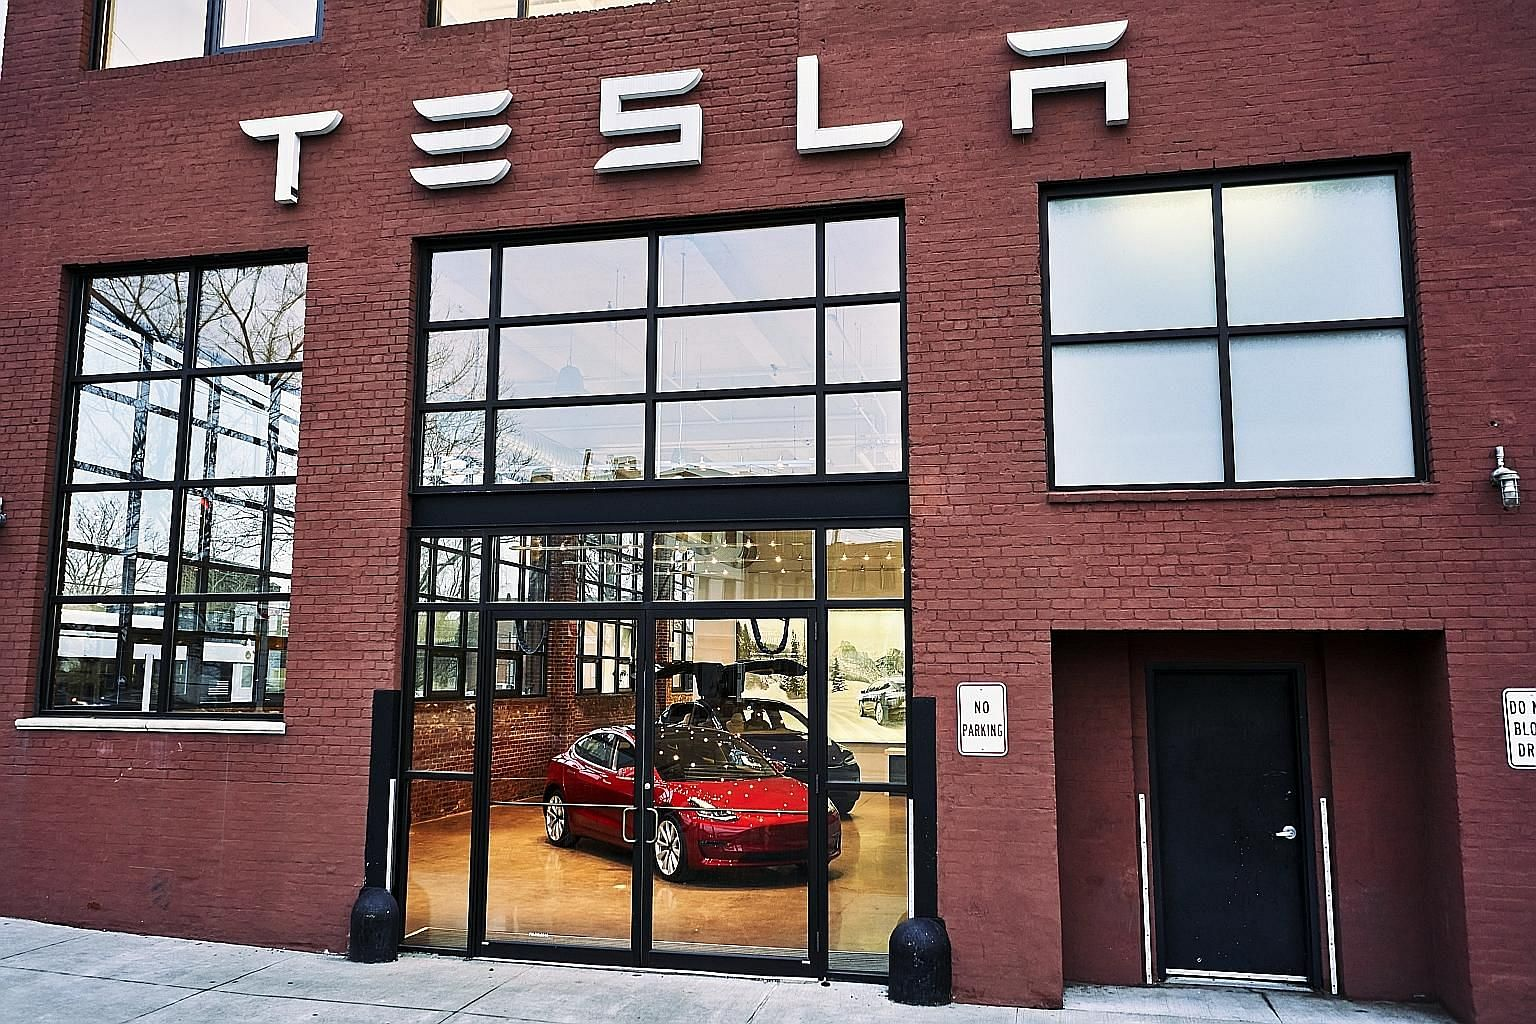 A Tesla showroom in the Red Hook section of Brooklyn in February. While several carmakers have added new models intended to cut into Tesla's electric dominance, they have barely made a dent, at least in the United States.